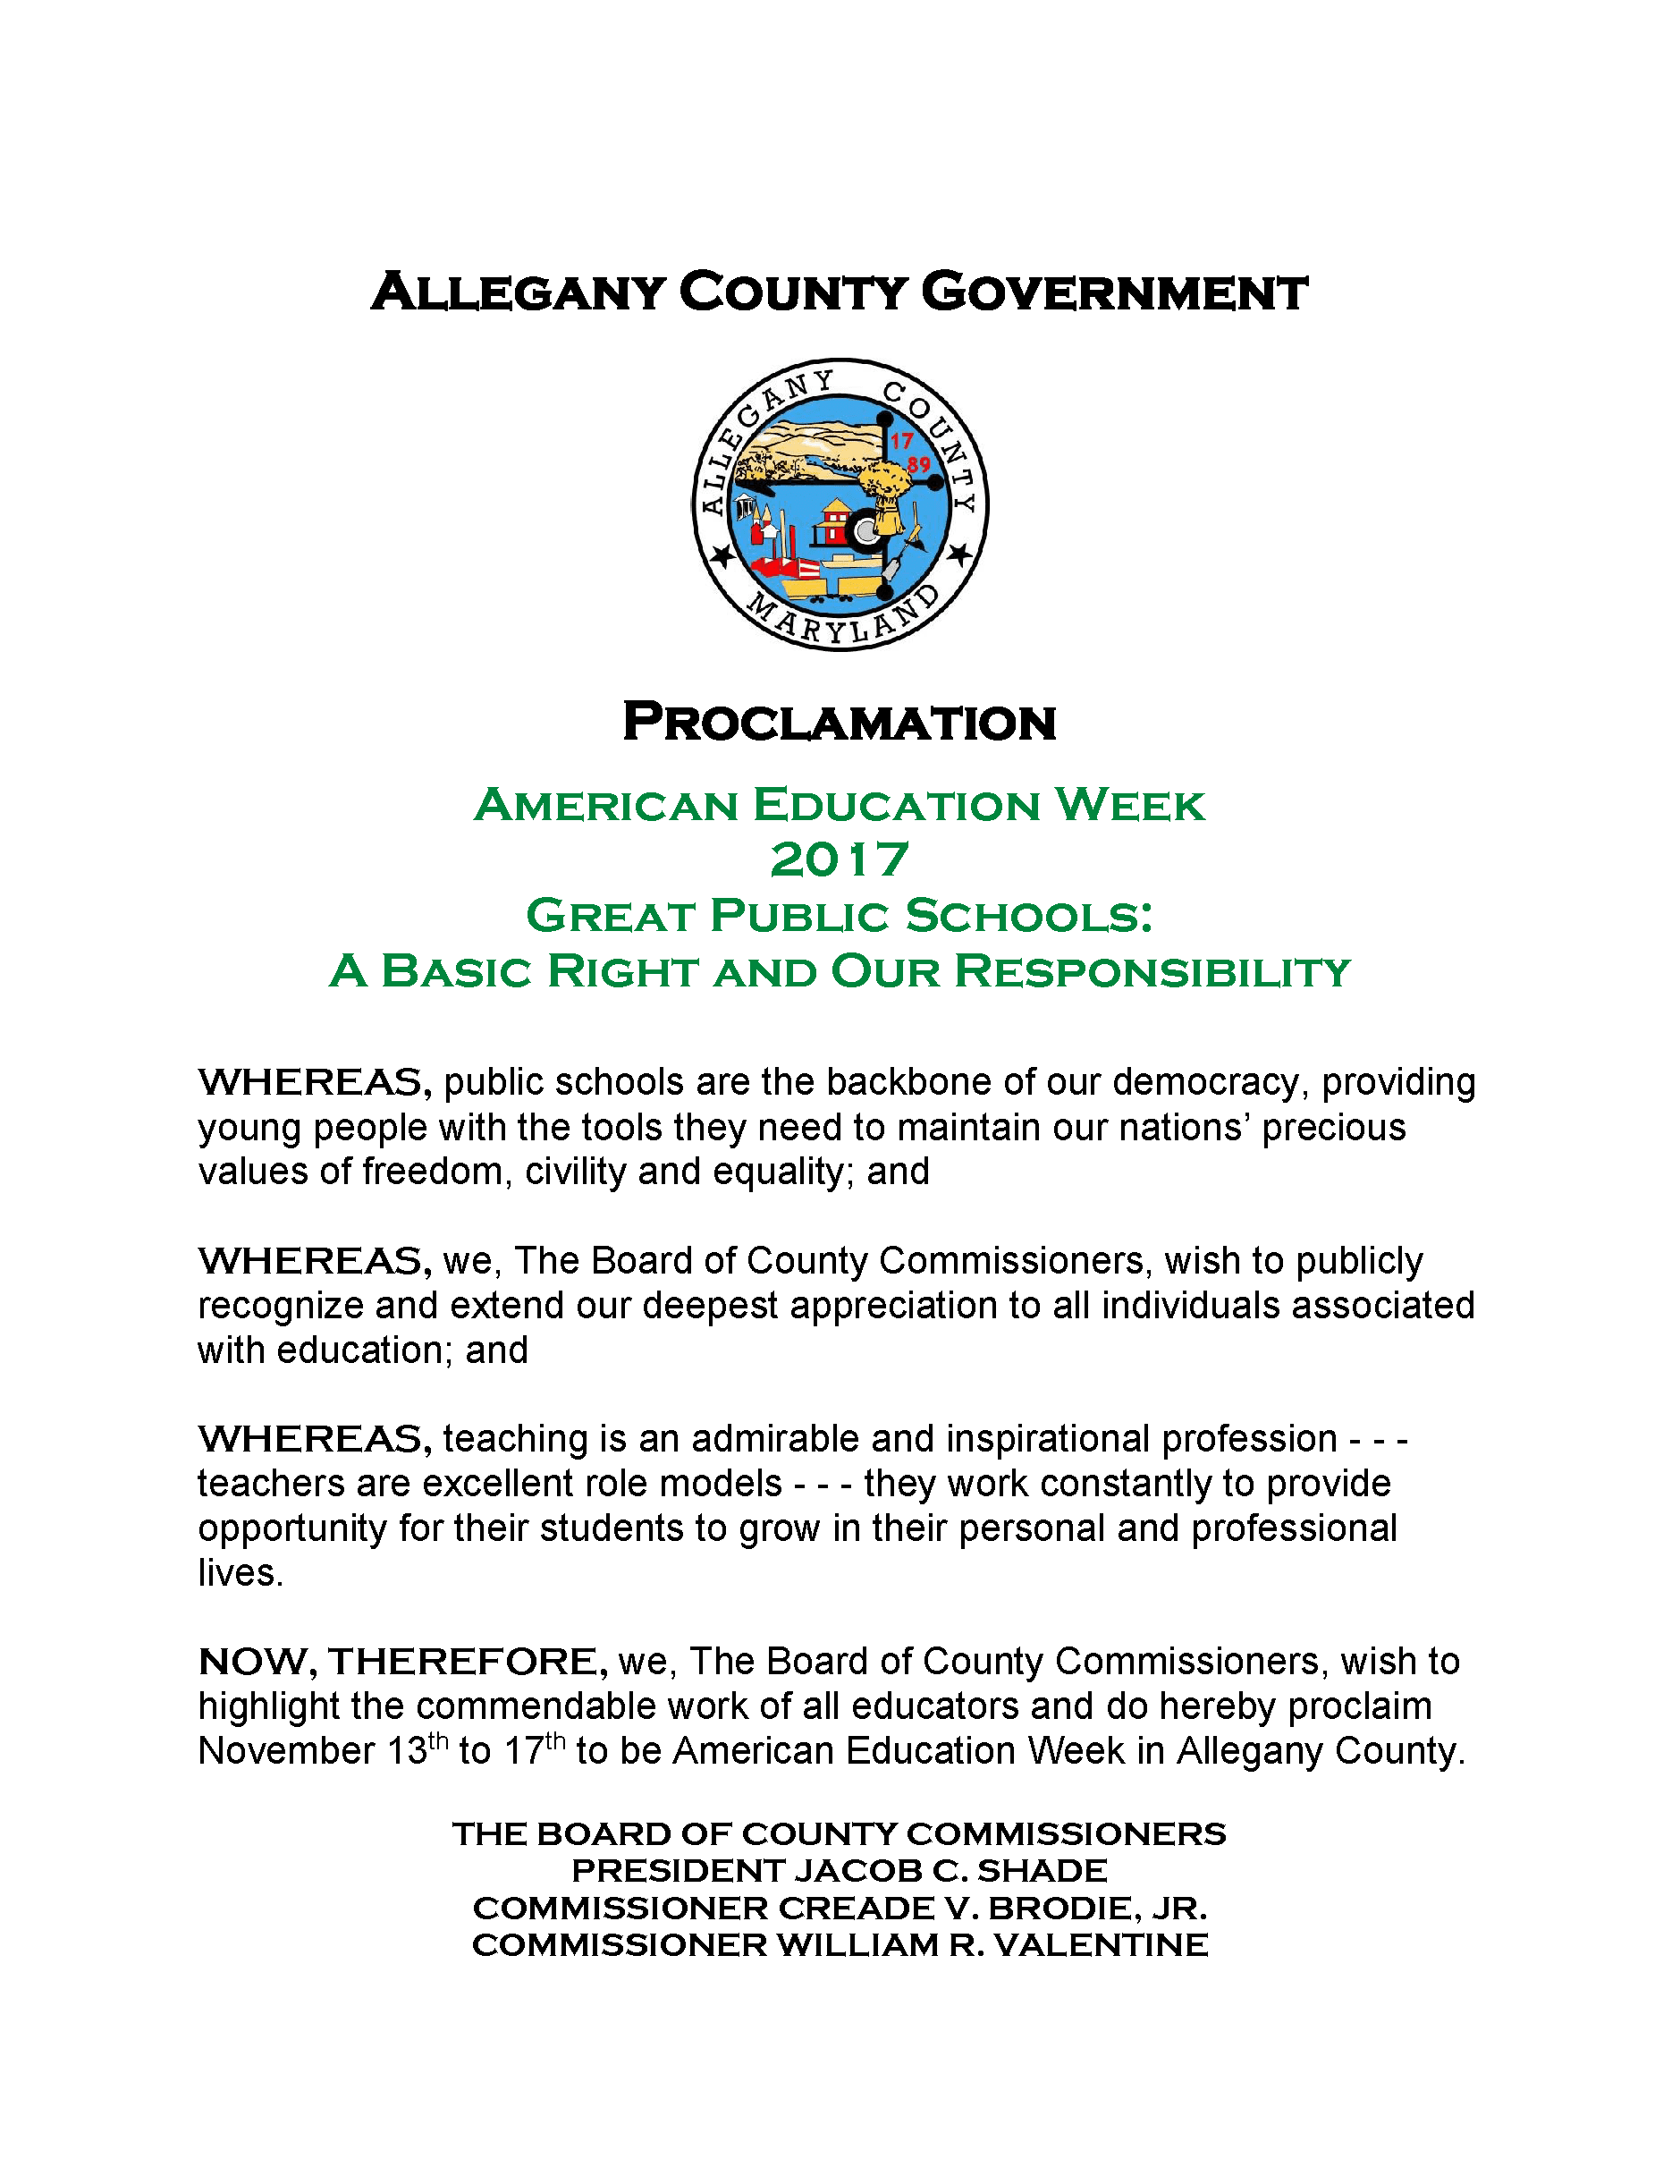 American Education Week 2017 Proclamation